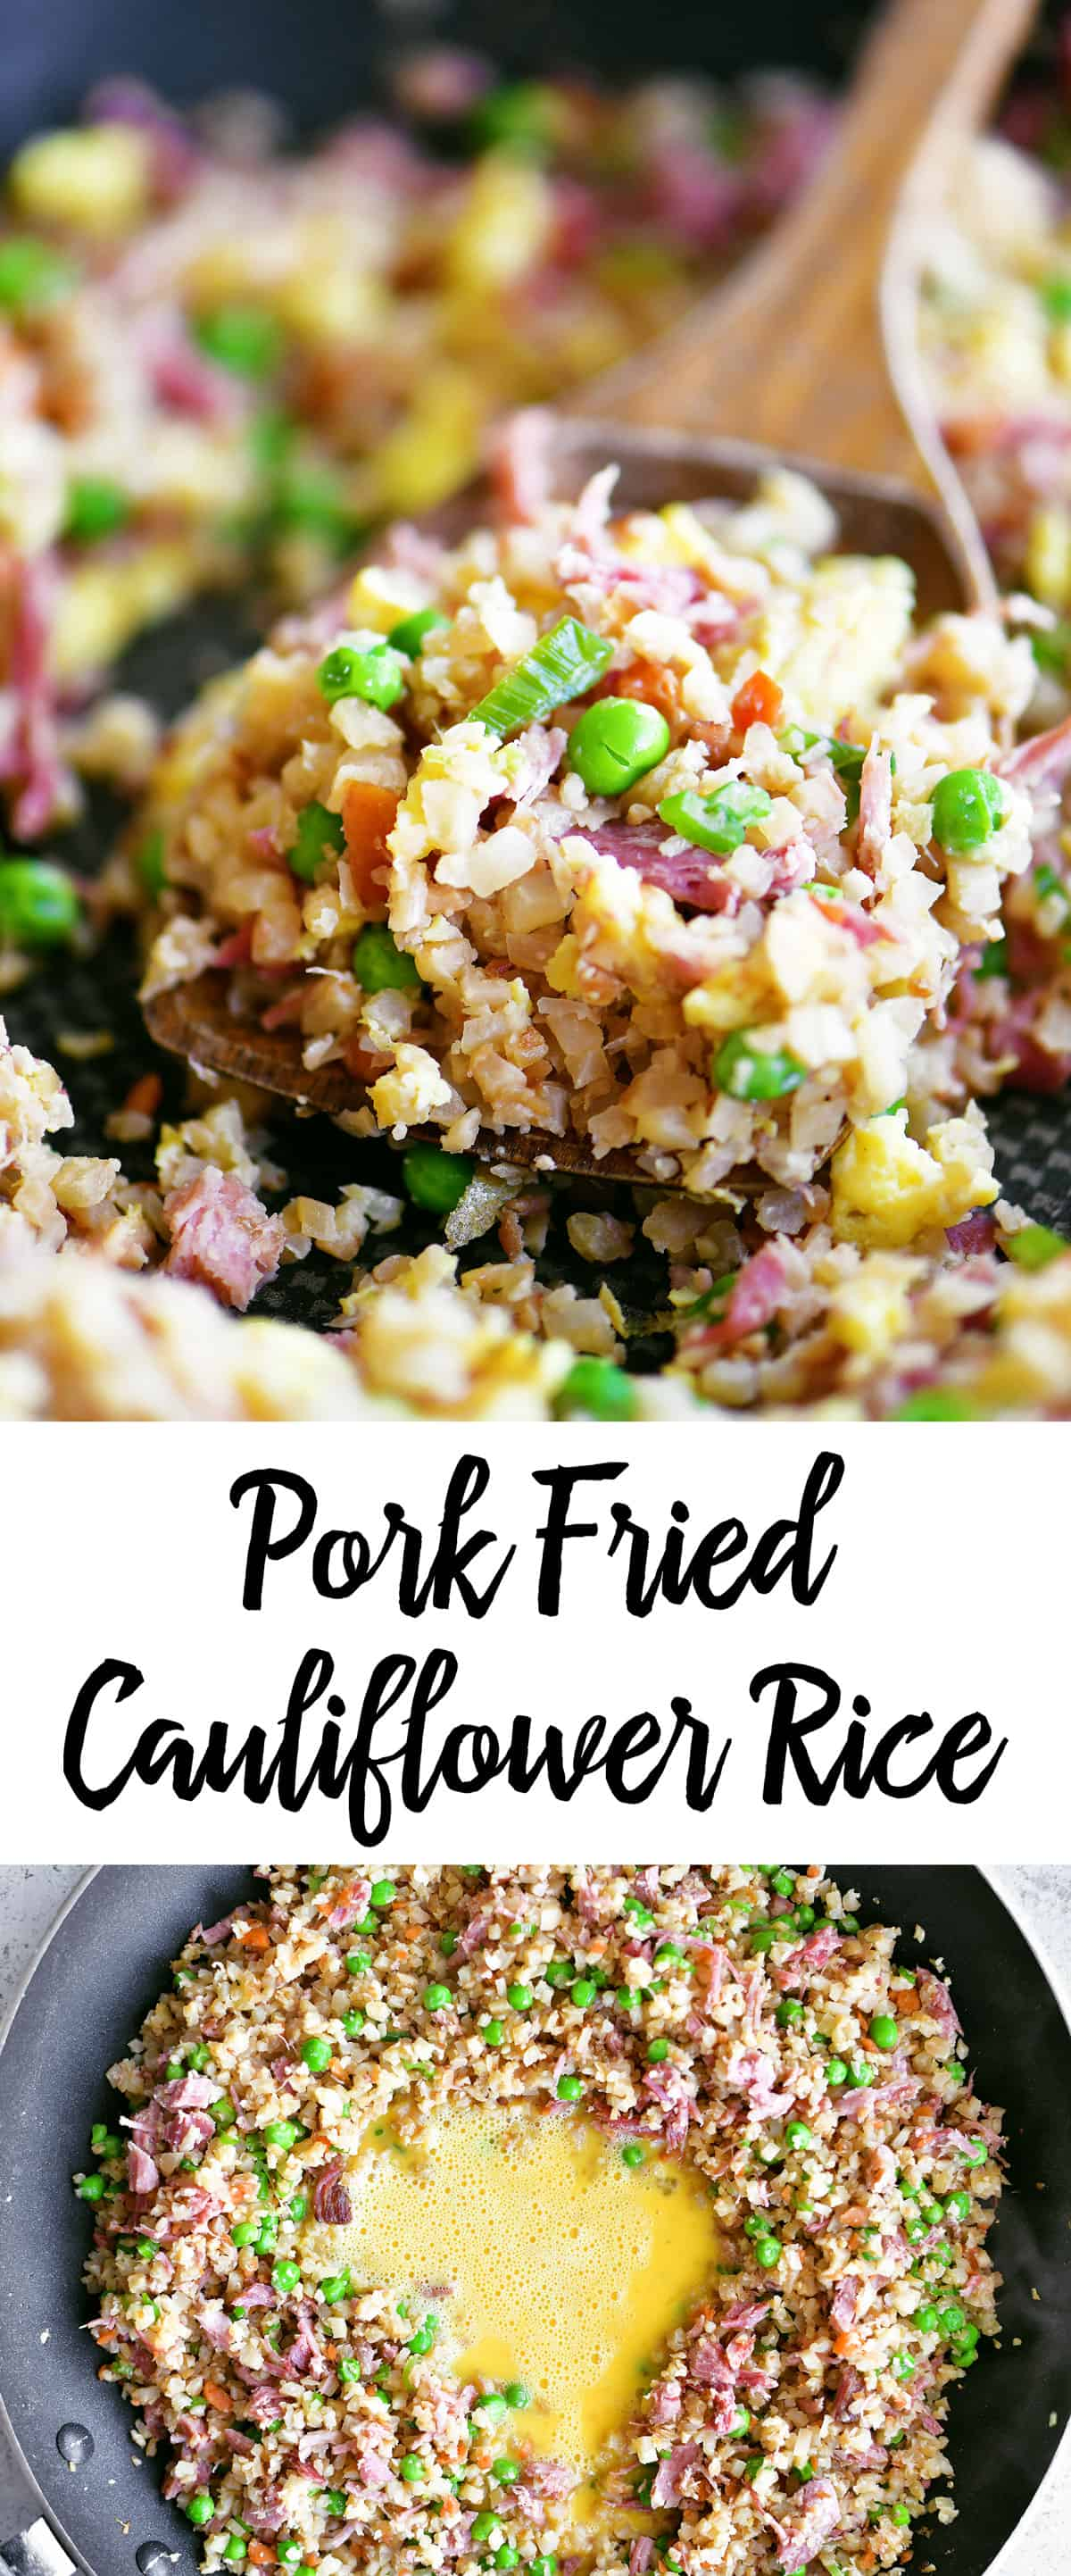 pork fried cauliflower rice image collage